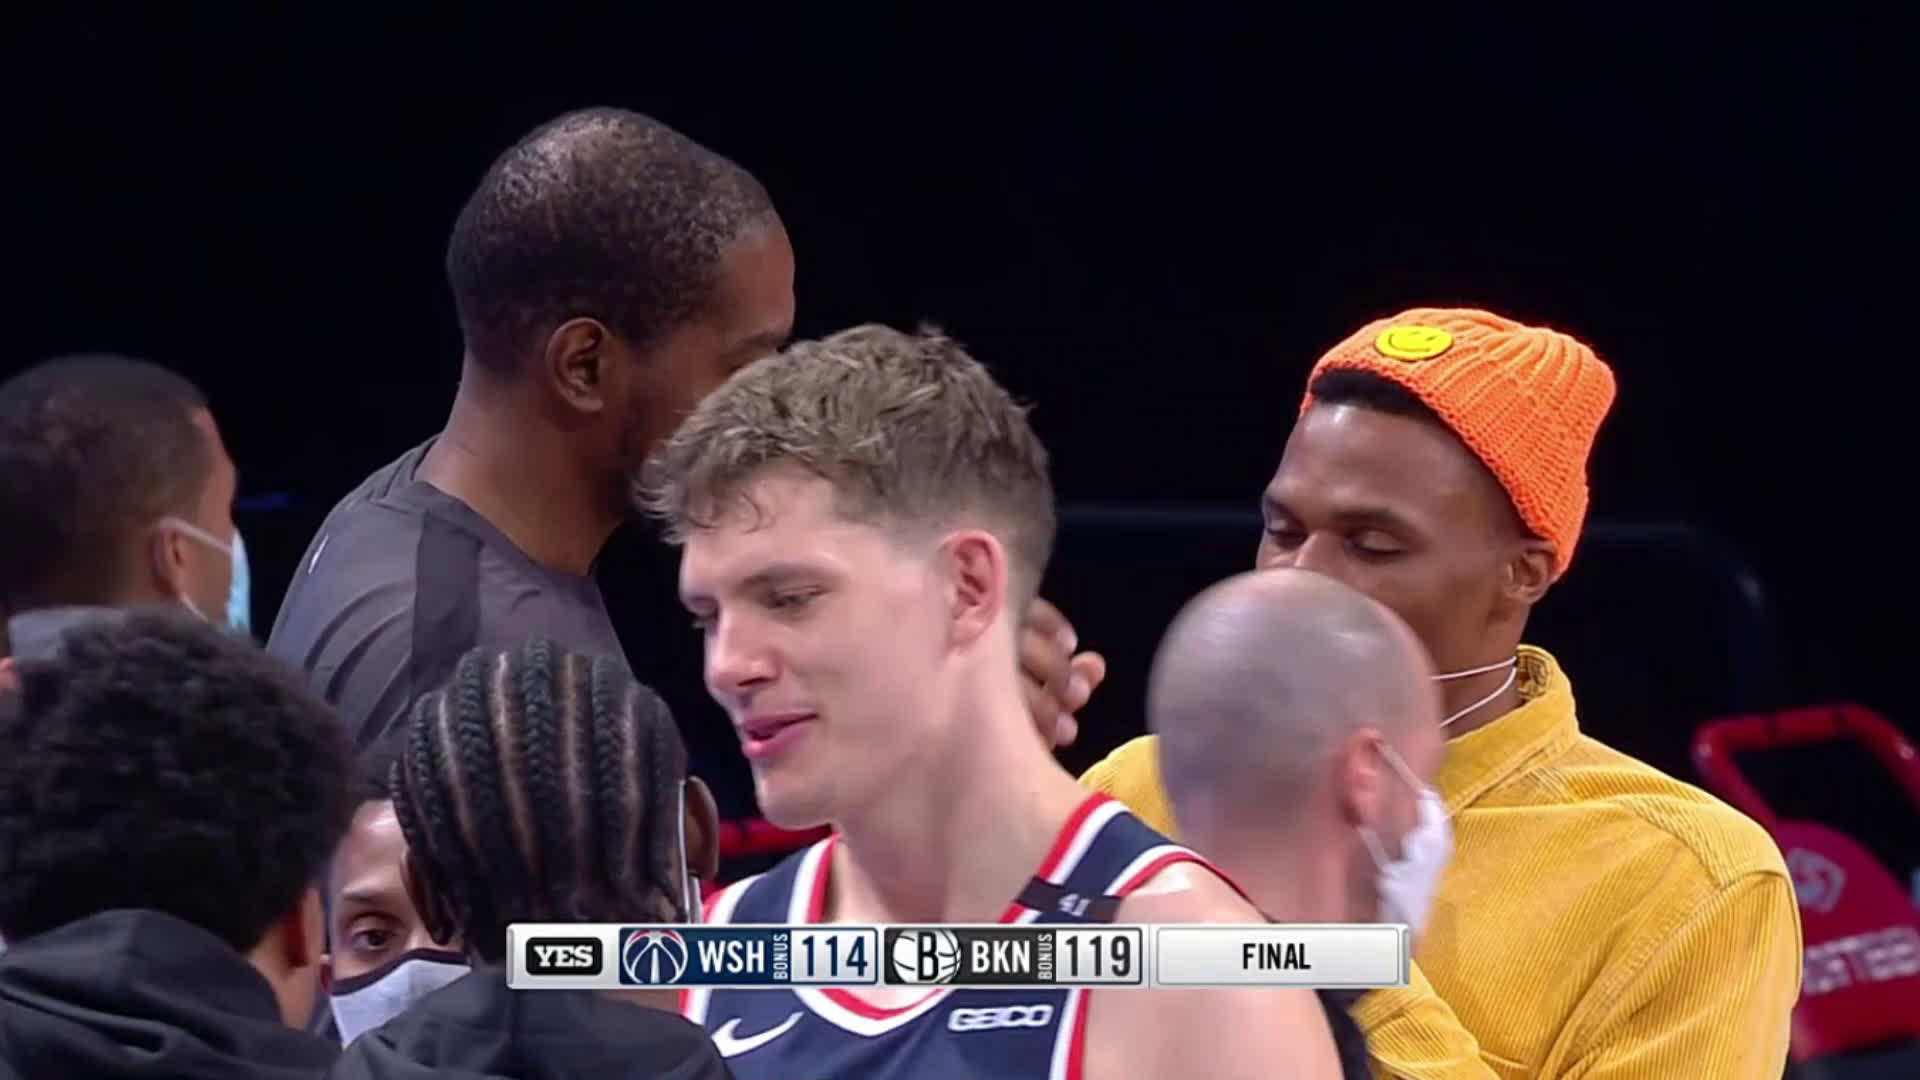 Durant and Westbrook having a chat after the Wizards @ Nets game